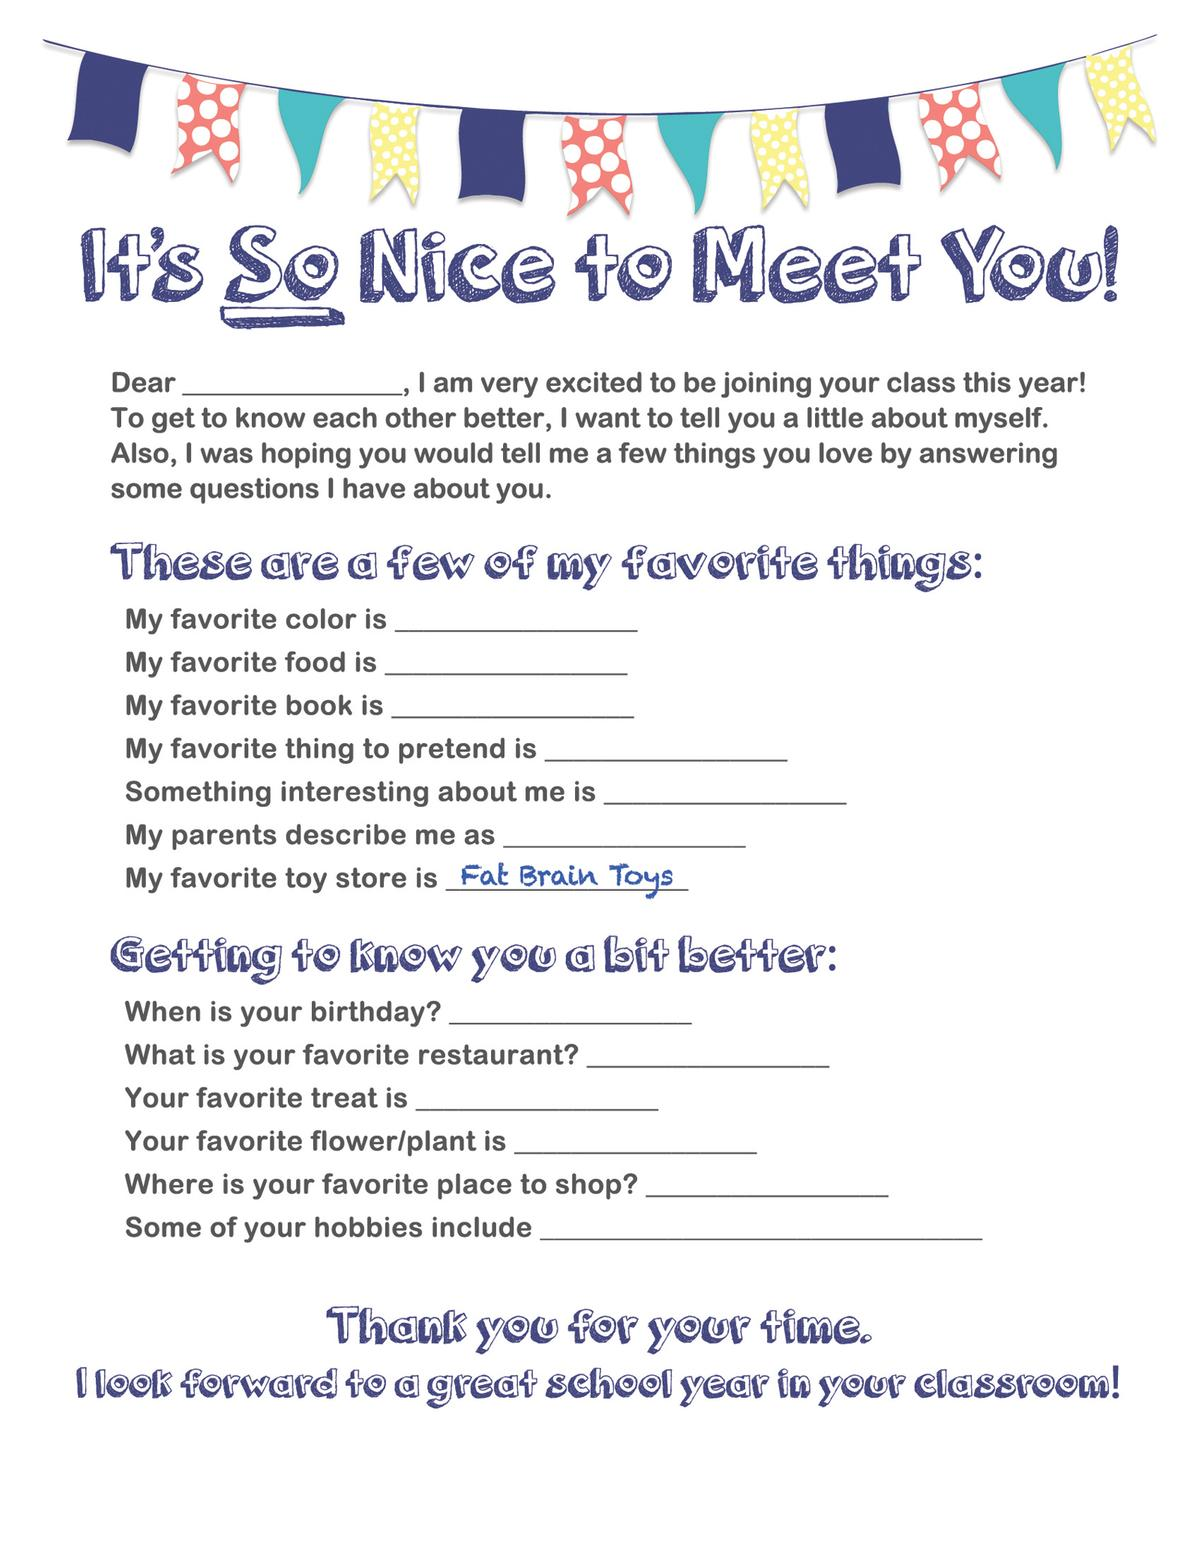 Smart image throughout getting to know you printable